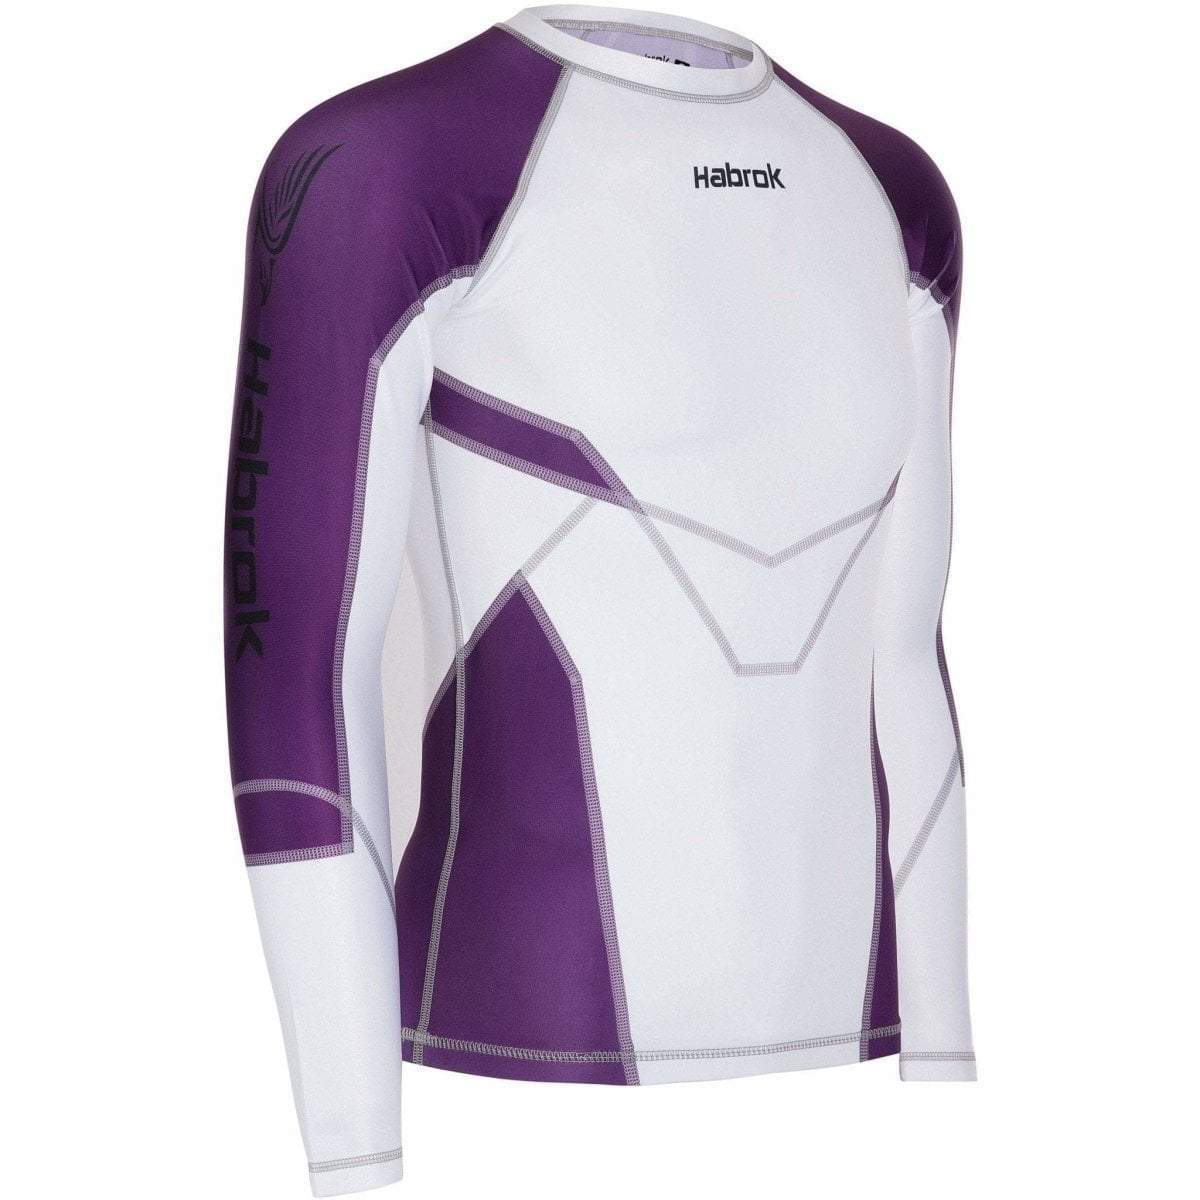 Habrok Rash Guard S / PURPLE Transform 2.5 | Rash Guard | Men